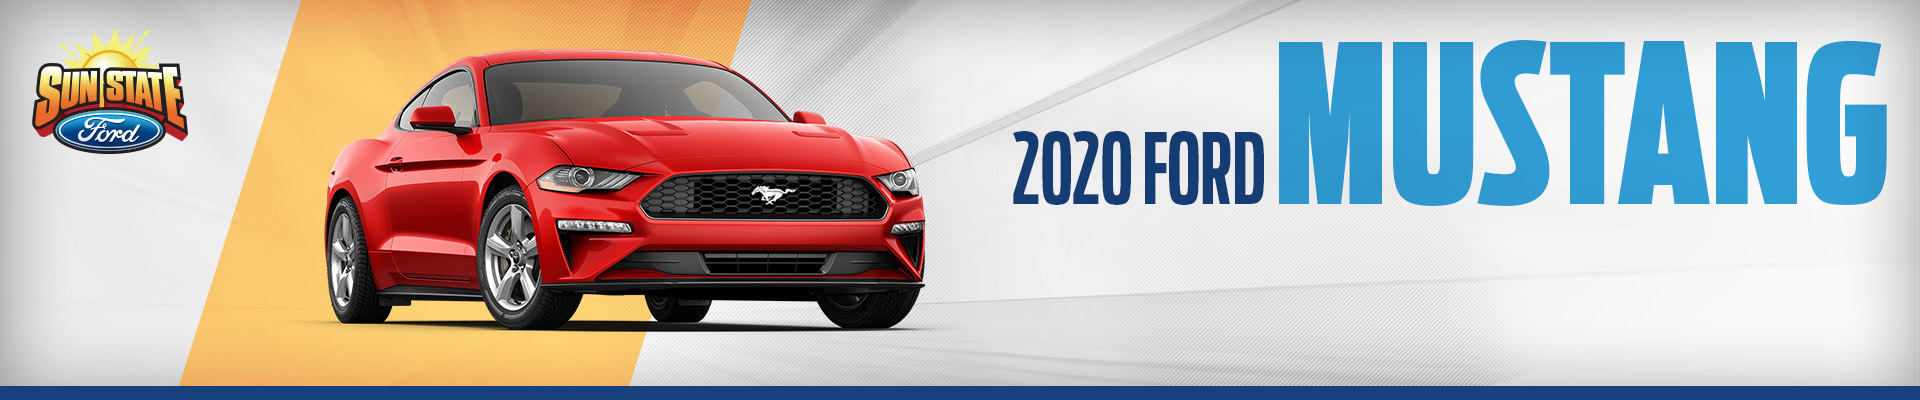 2020 Ford Mustang - Sun State Ford - Orlando, FL